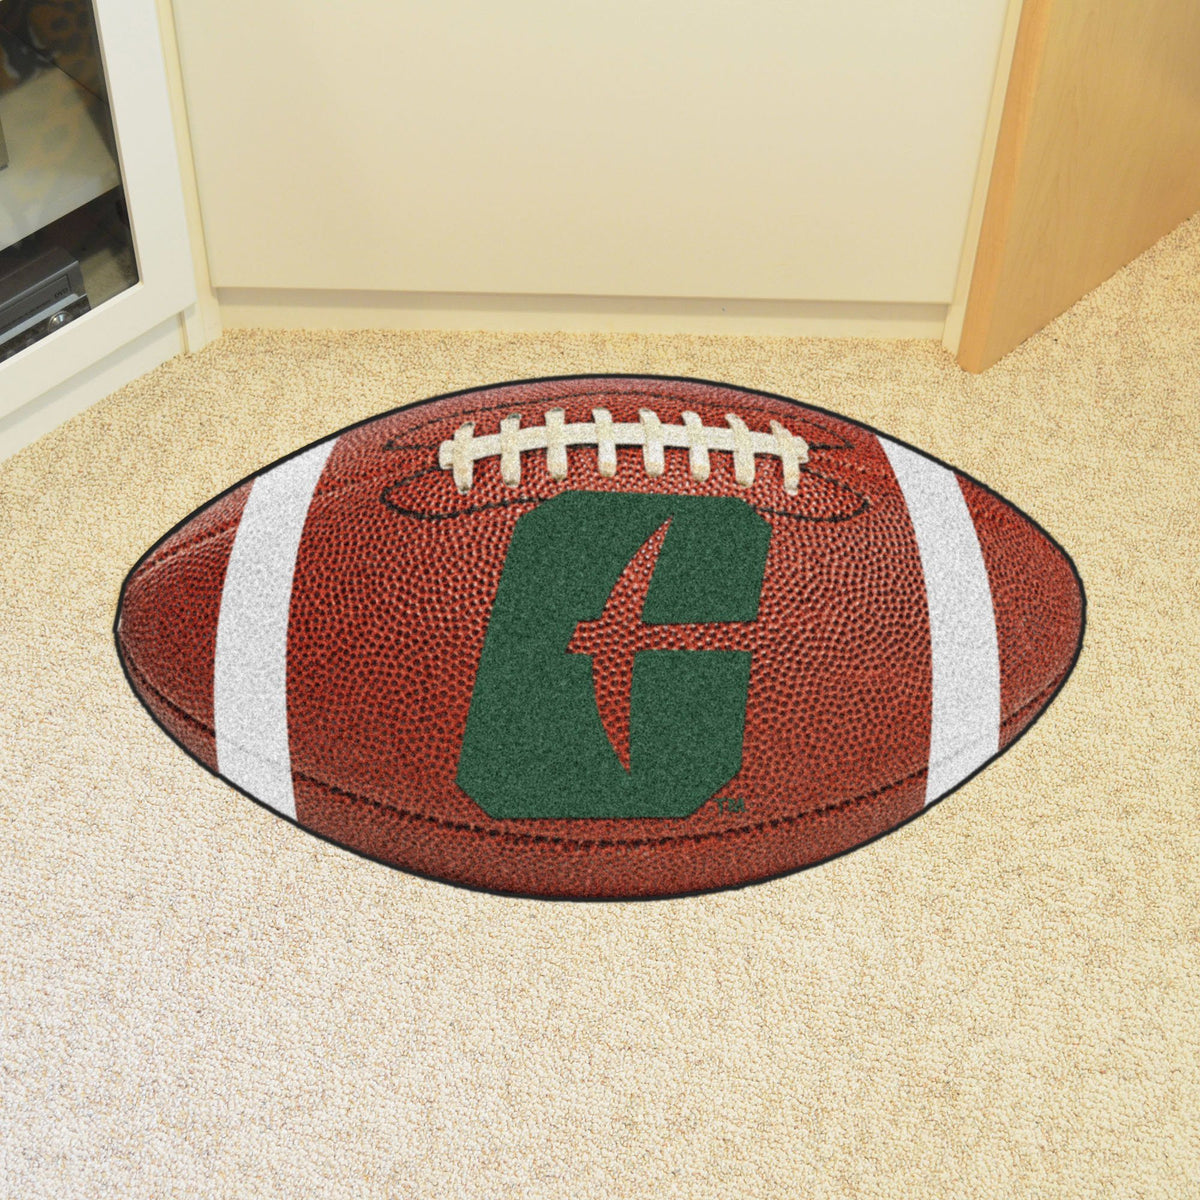 Collegiate - Football Mat: A - K Collegiate Mats, Rectangular Mats, Football Mat, Collegiate, Home Fan Mats Charlotte